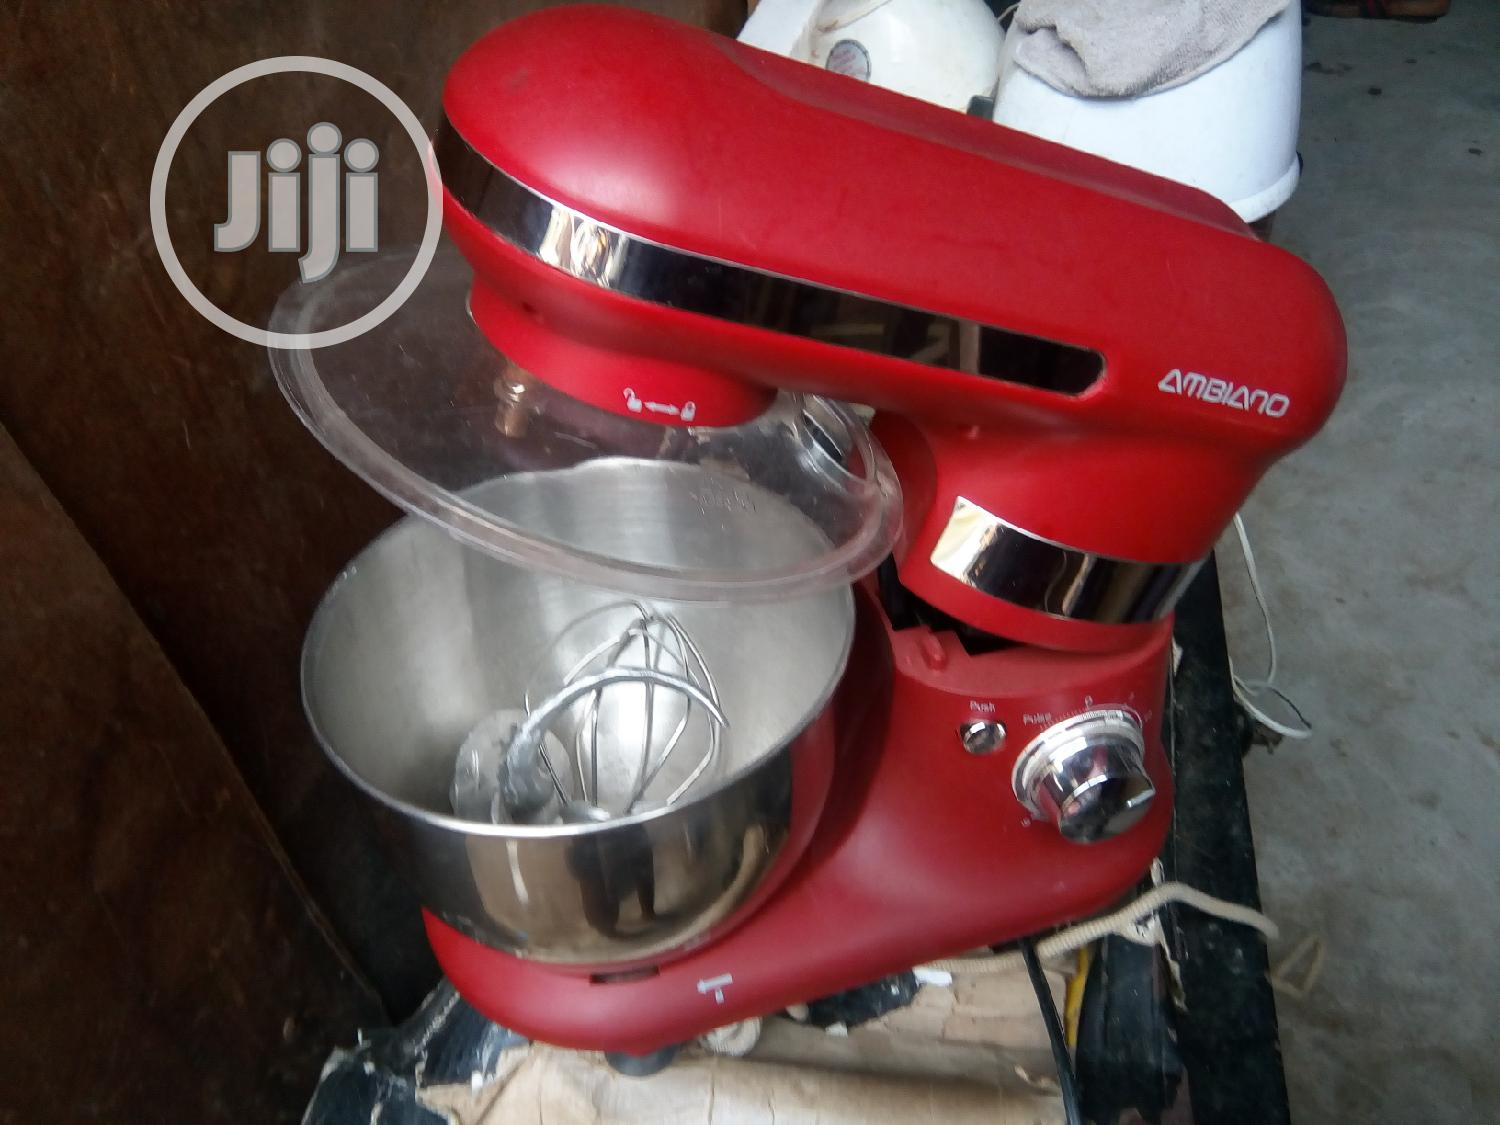 Ambiano Stand Mixer 4 L | Kitchen Appliances for sale in Ojo, Lagos State, Nigeria